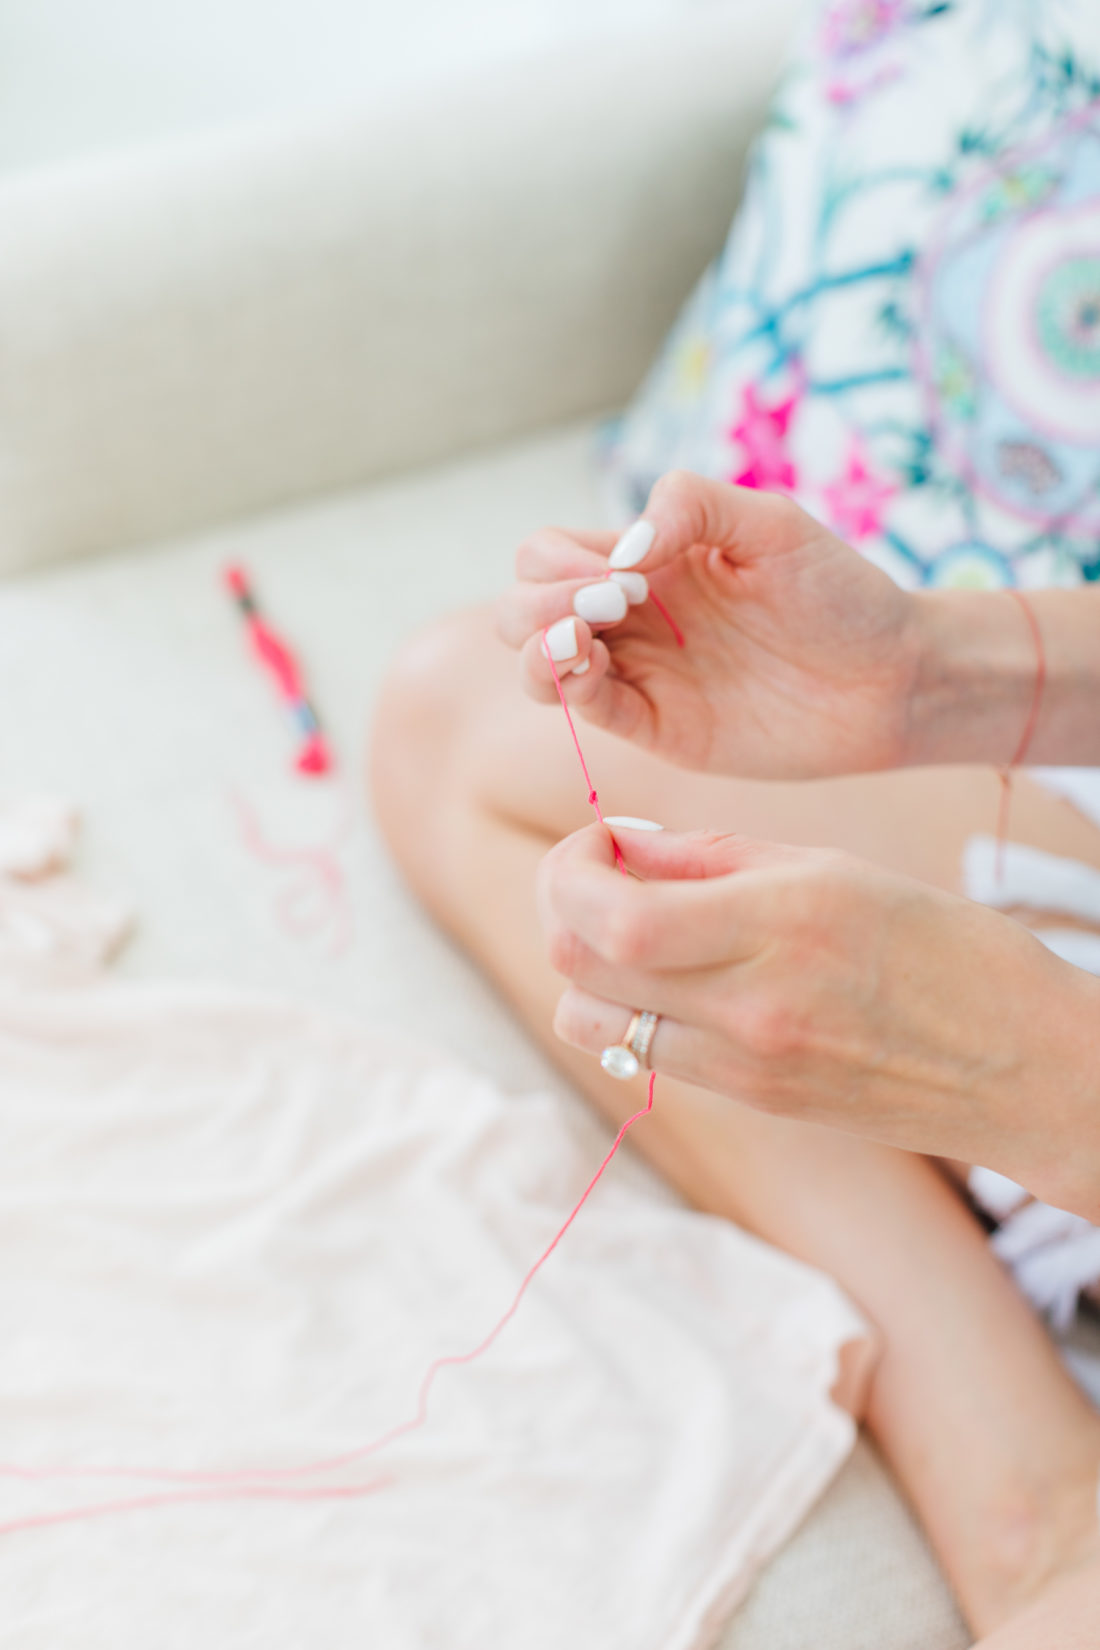 Eva Amurri Martino knotting pink thread for her embroidered tee DIY